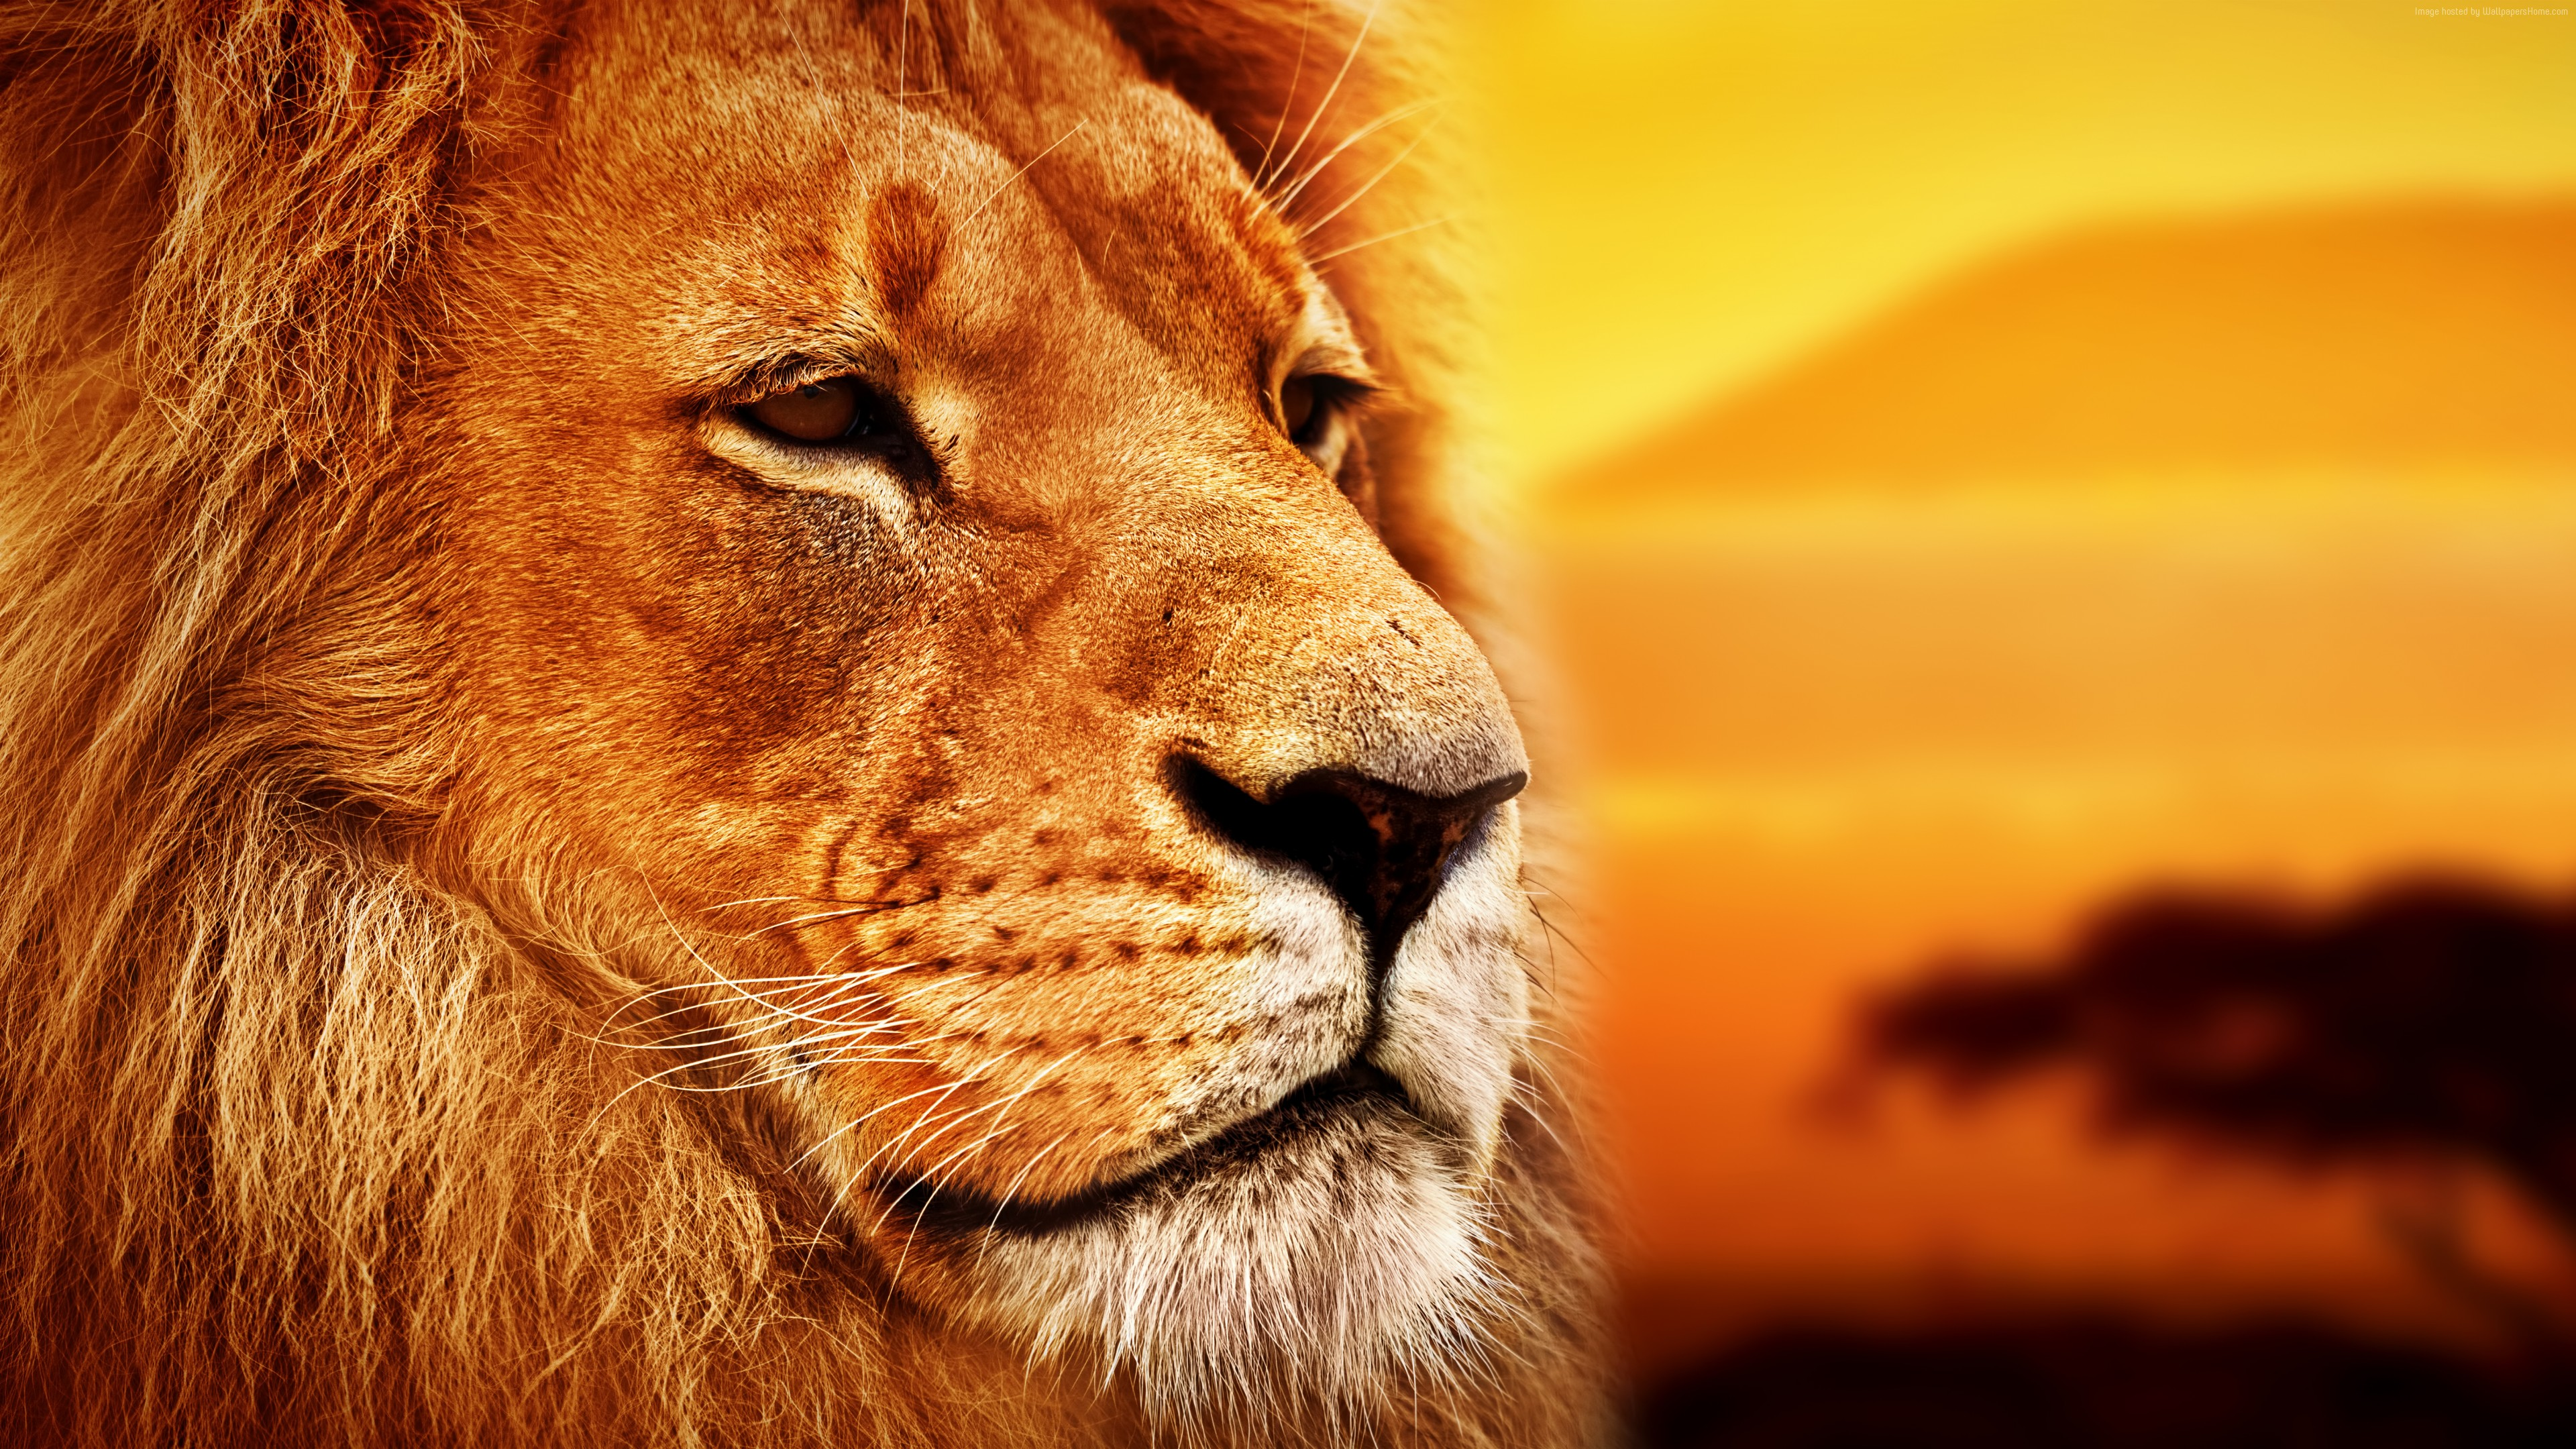 Wallpaper lion, Savanna, 8k, Animals